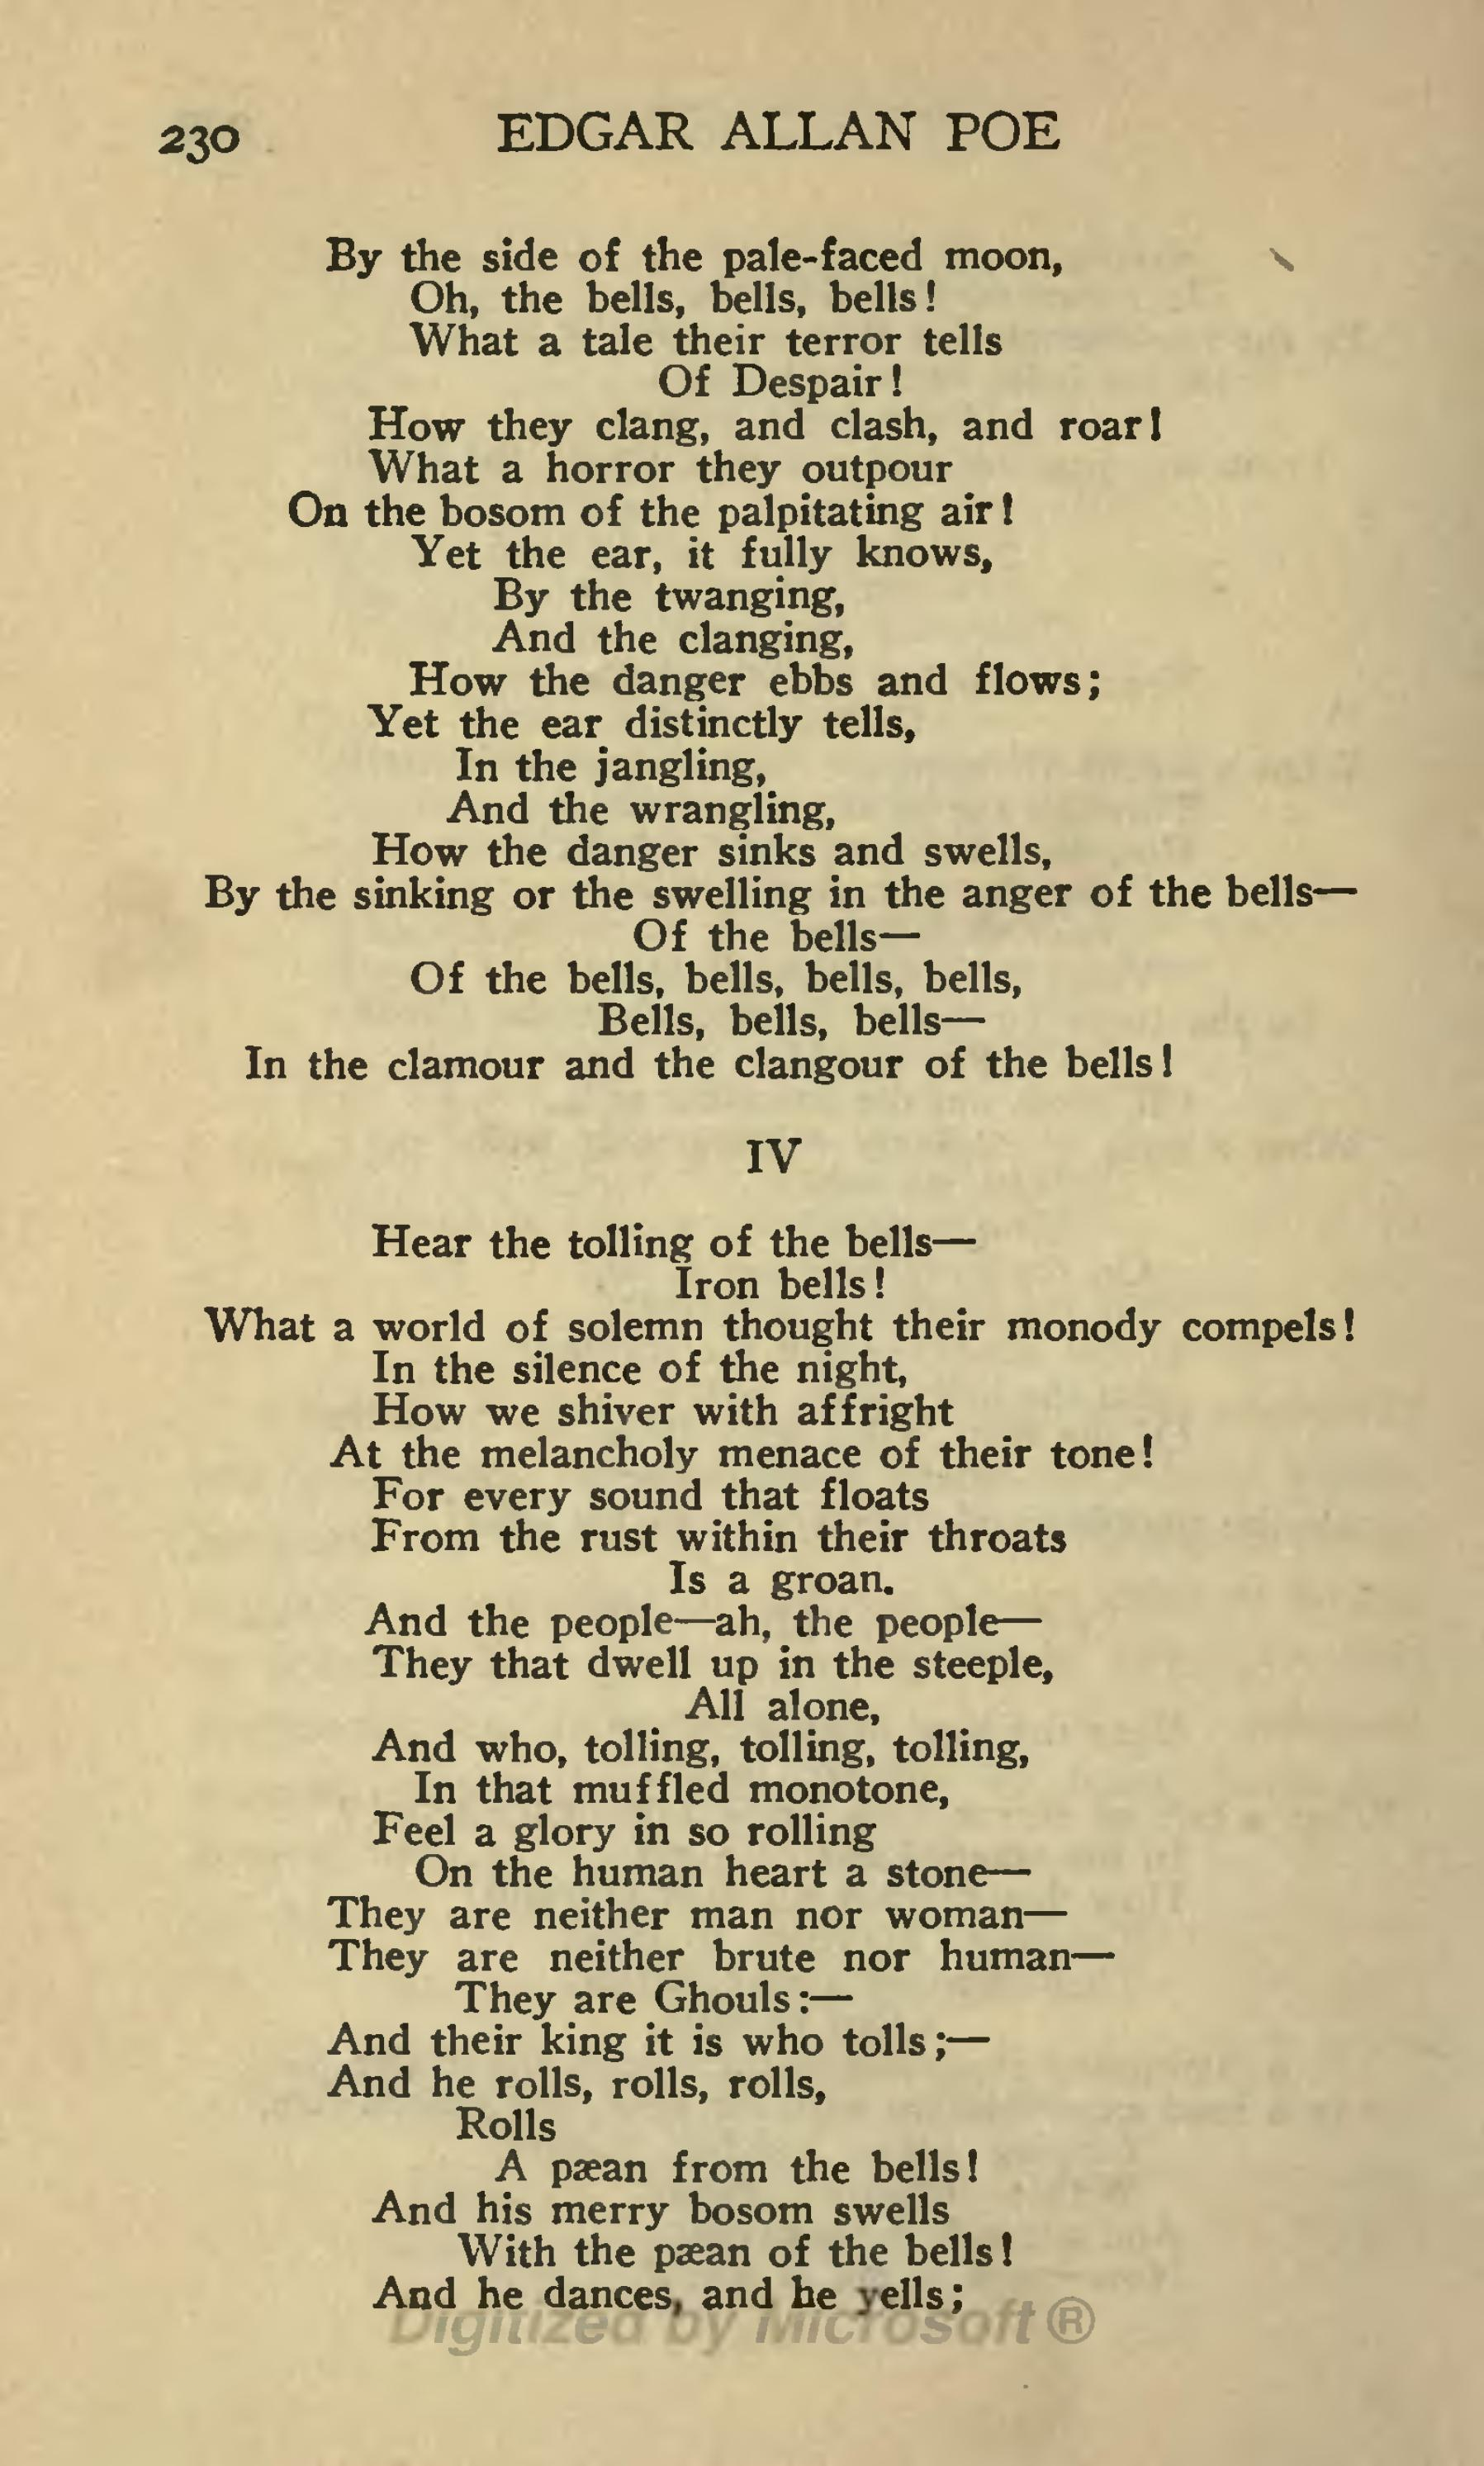 edgar allan poe literary analysis Analyzing the raven by edgar allan poe begins with understanding what happens as the story progresses use this stanza-by-stanza summary to clear up misconceptions and provide a springboard to poetry analysis.